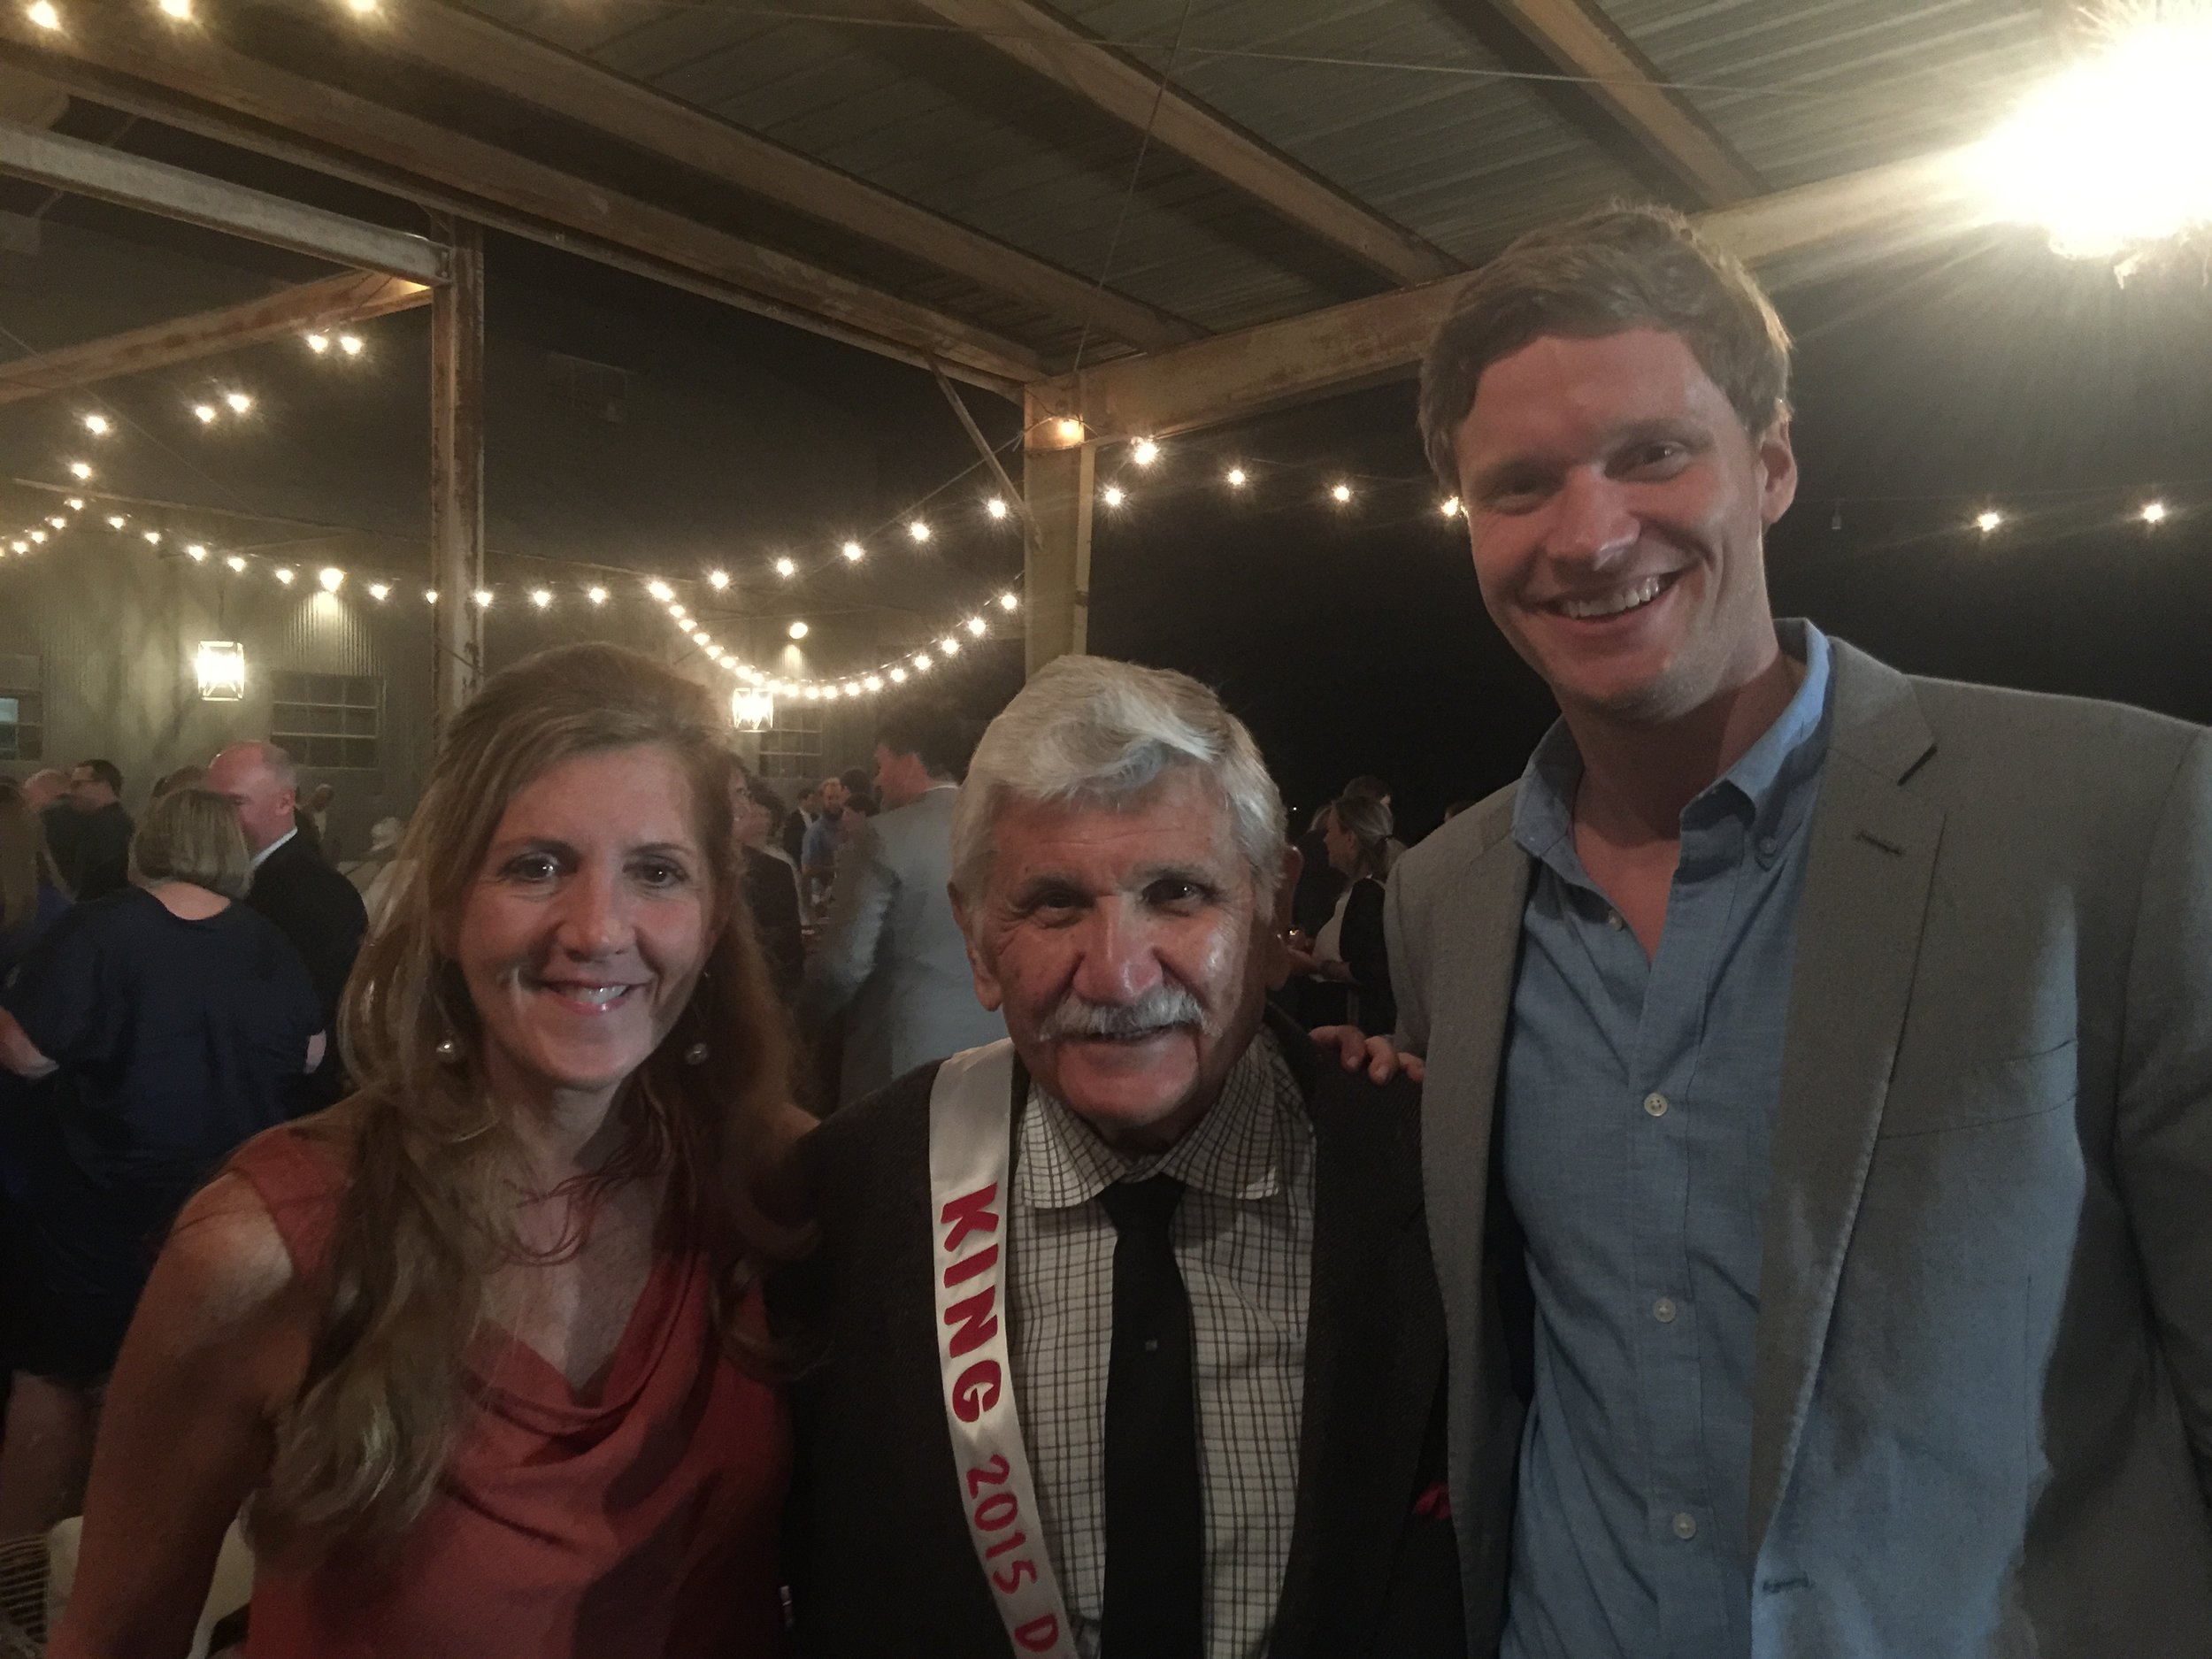 Me, The King of the Delta Hot Tamale Festival, and Andy Nelson of Nelson's Green Brier Distillery